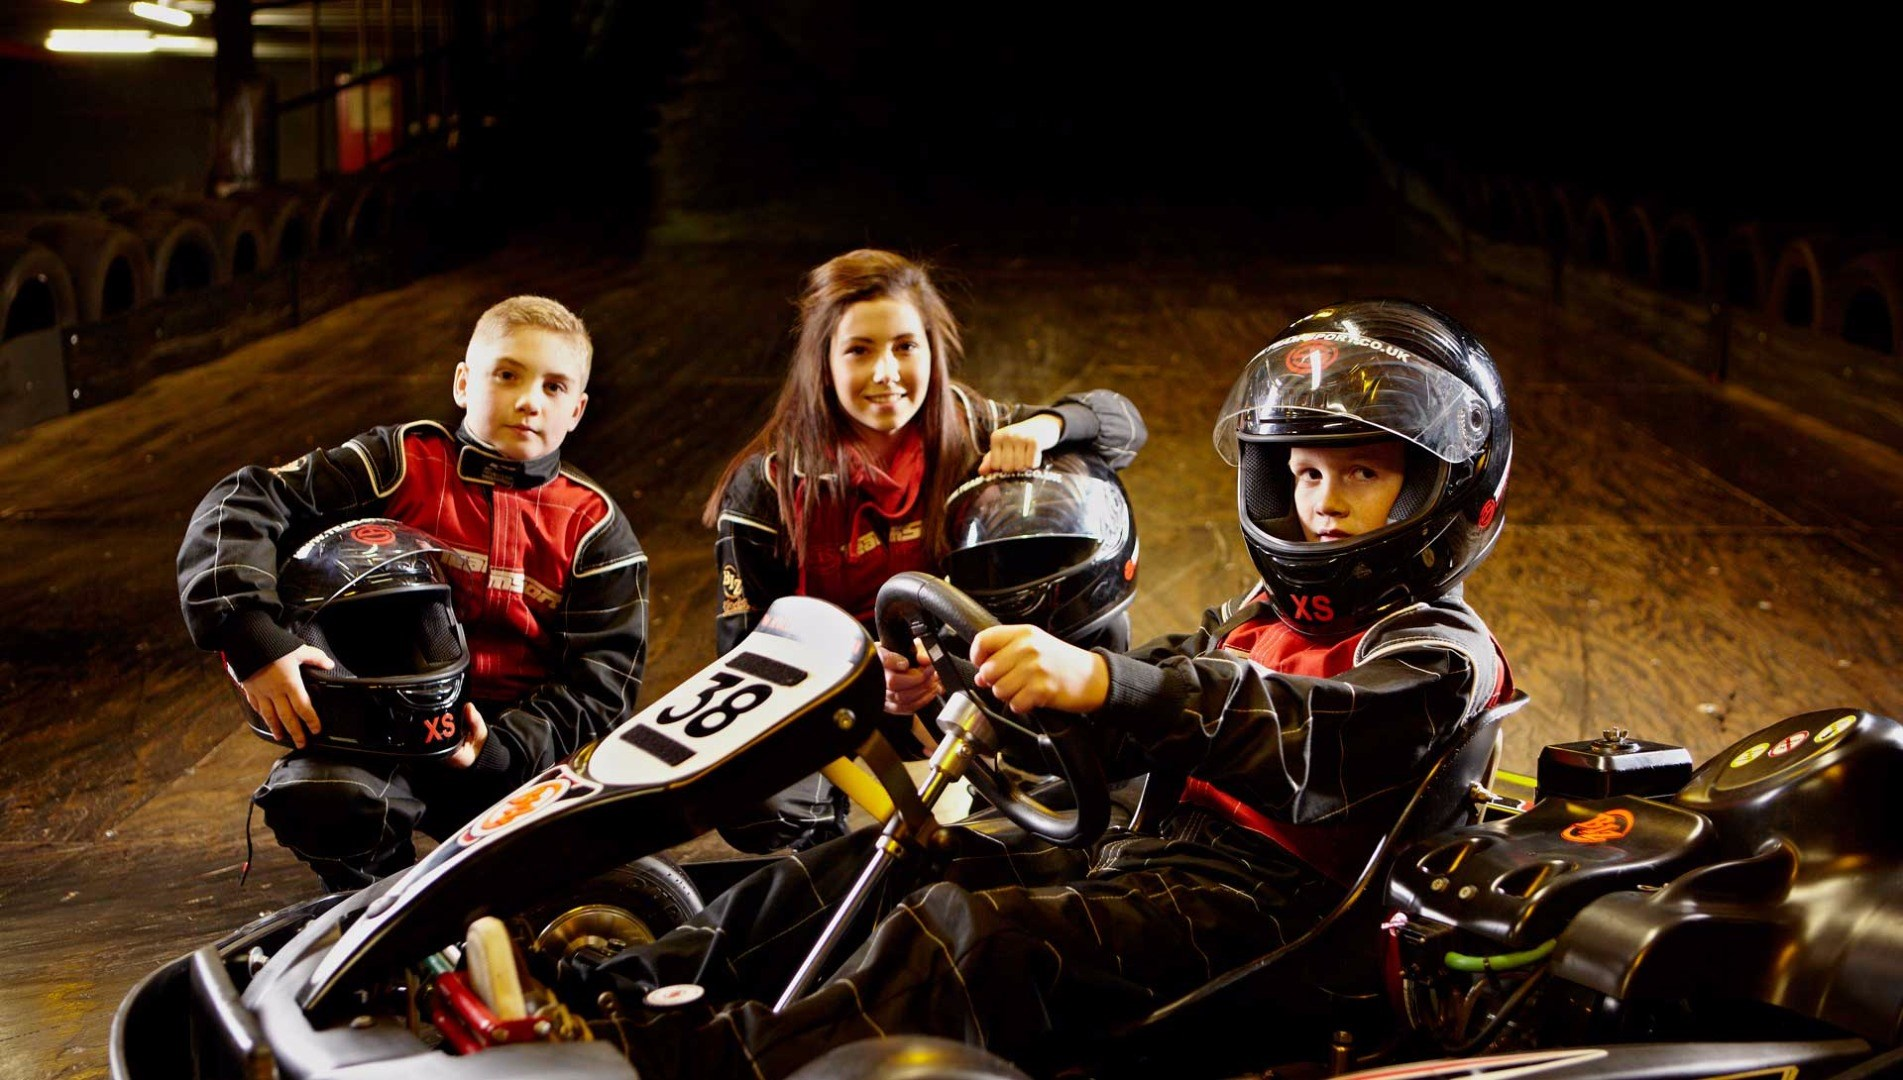 Web_Header_1920x1090_Kids-Go-Karting.jpg